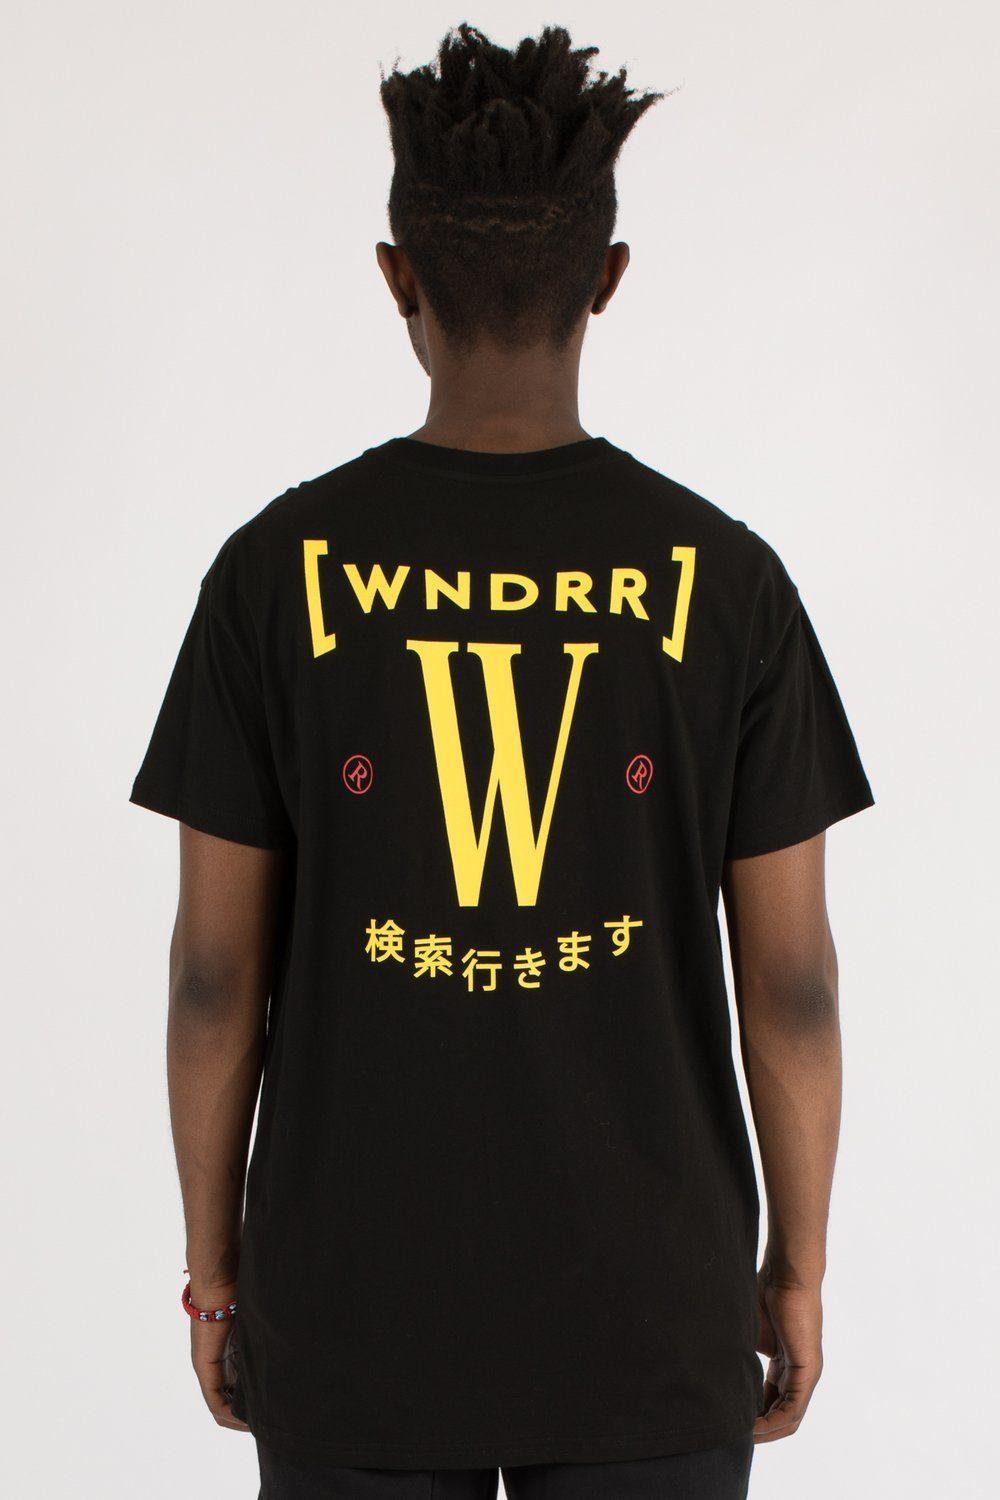 BYPASS CUSTOM FIT TEE - BLACK WNDRR Imperial Clothing